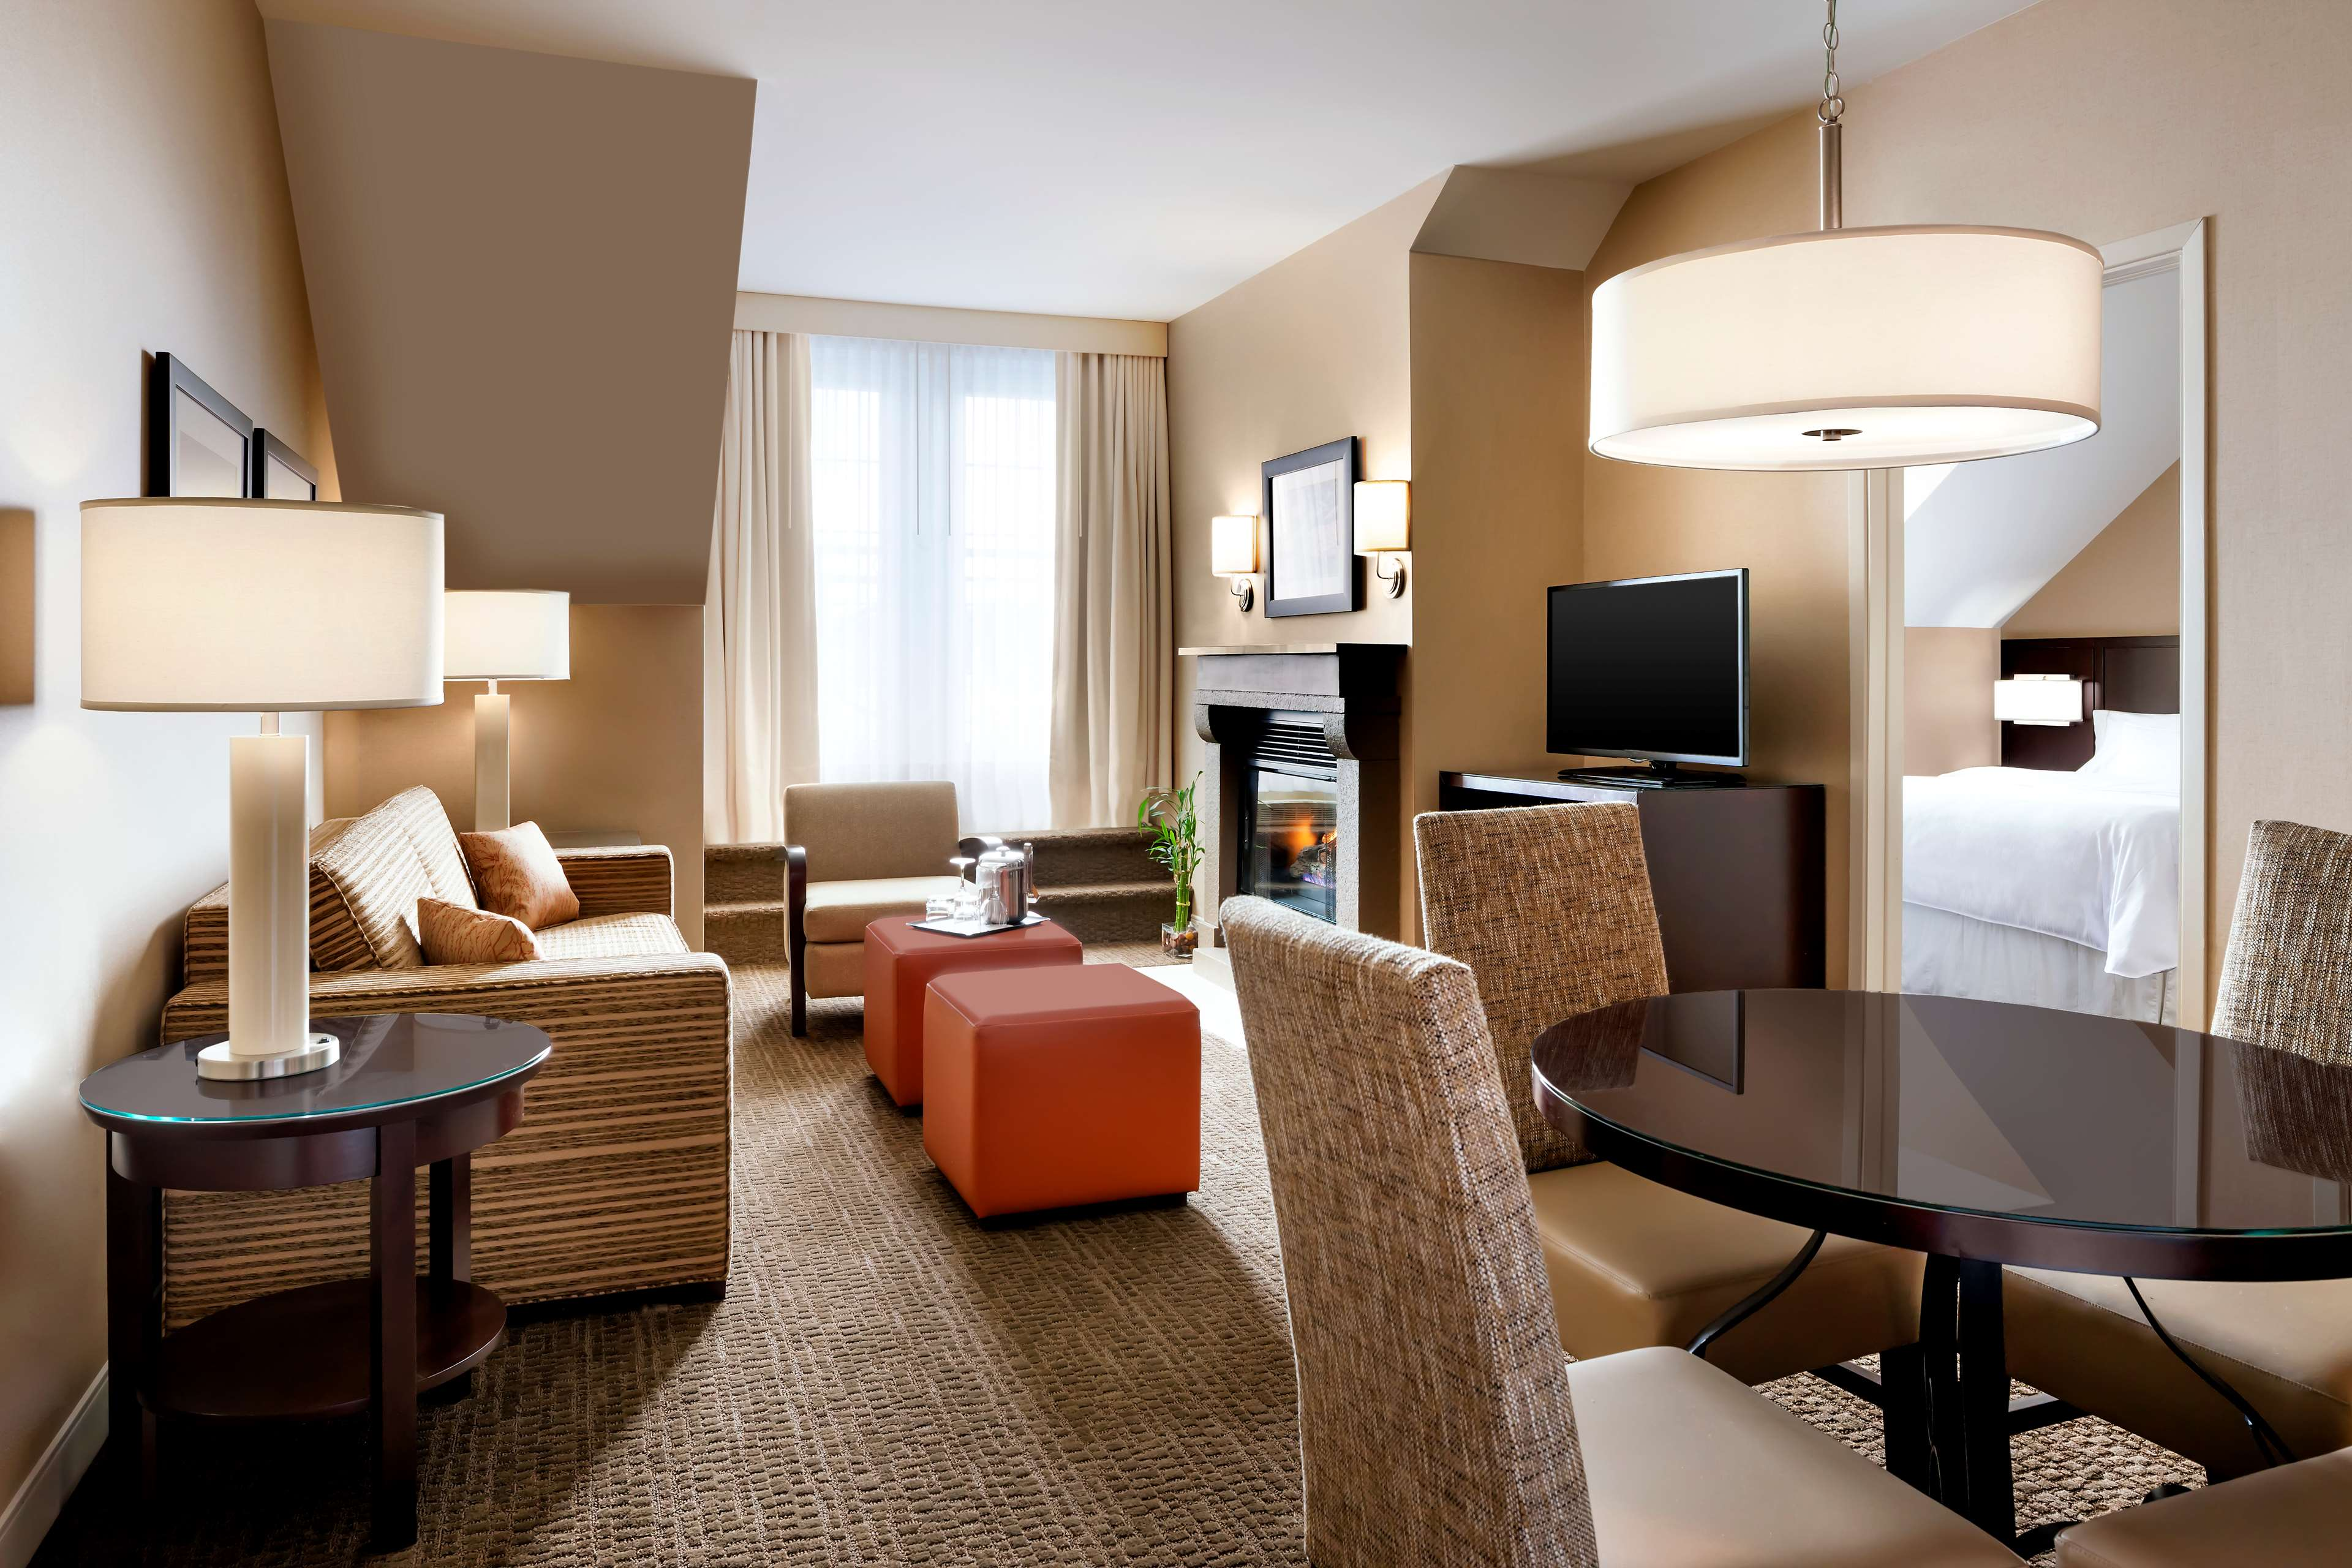 Le Westin Resort & Spa, Tremblant, Quebec à Mont Tremblant: Living Areas with view to the Bedroom - One Bedroom Suite